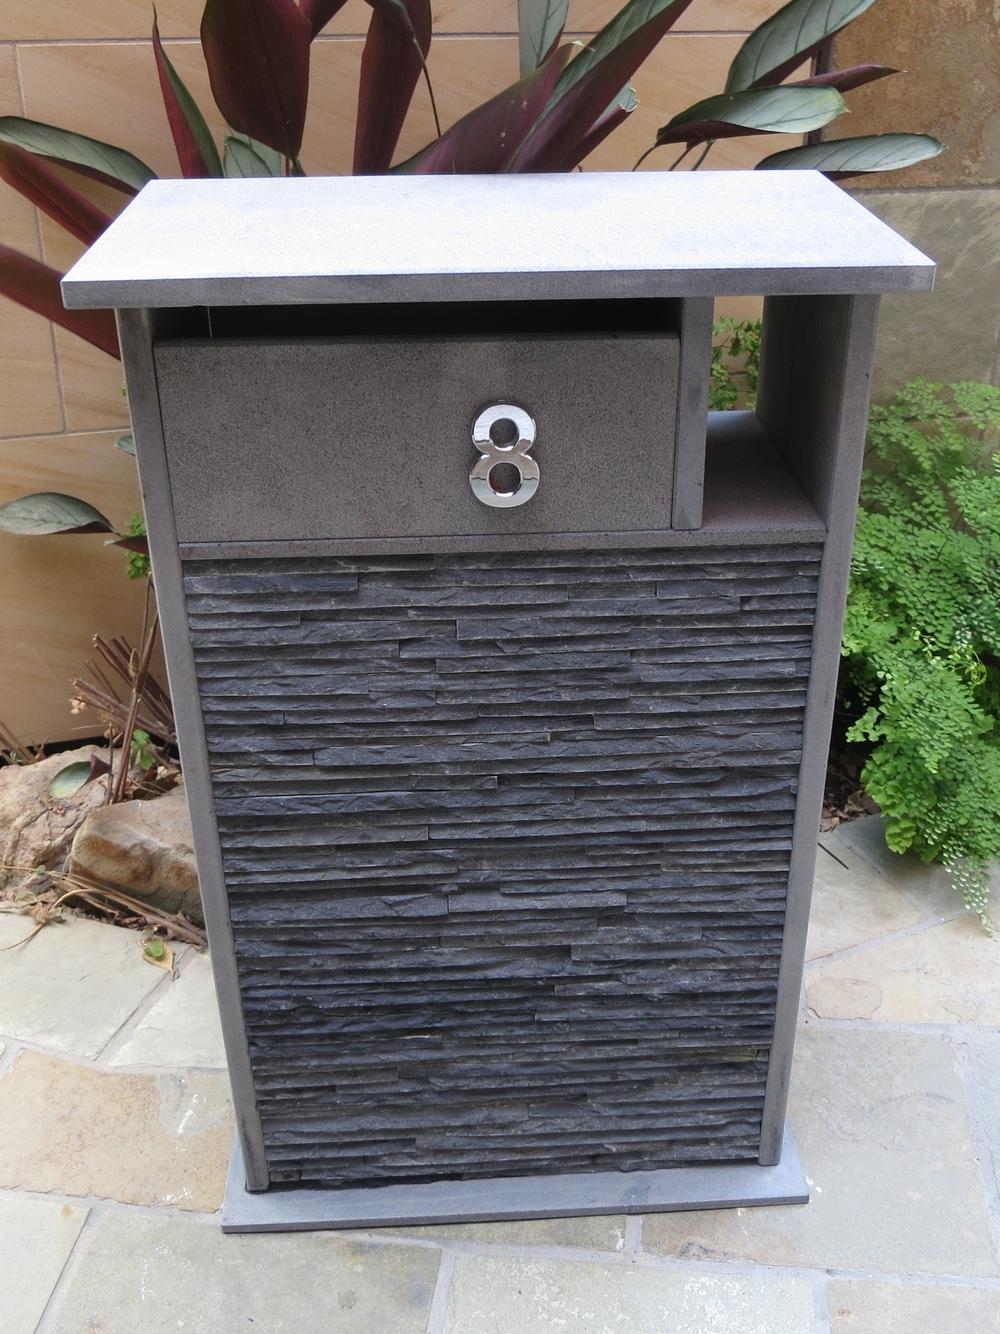 13. custom made letterbox one pc unit pick up from store only (60kg unit), price depends on Height $780 to $880